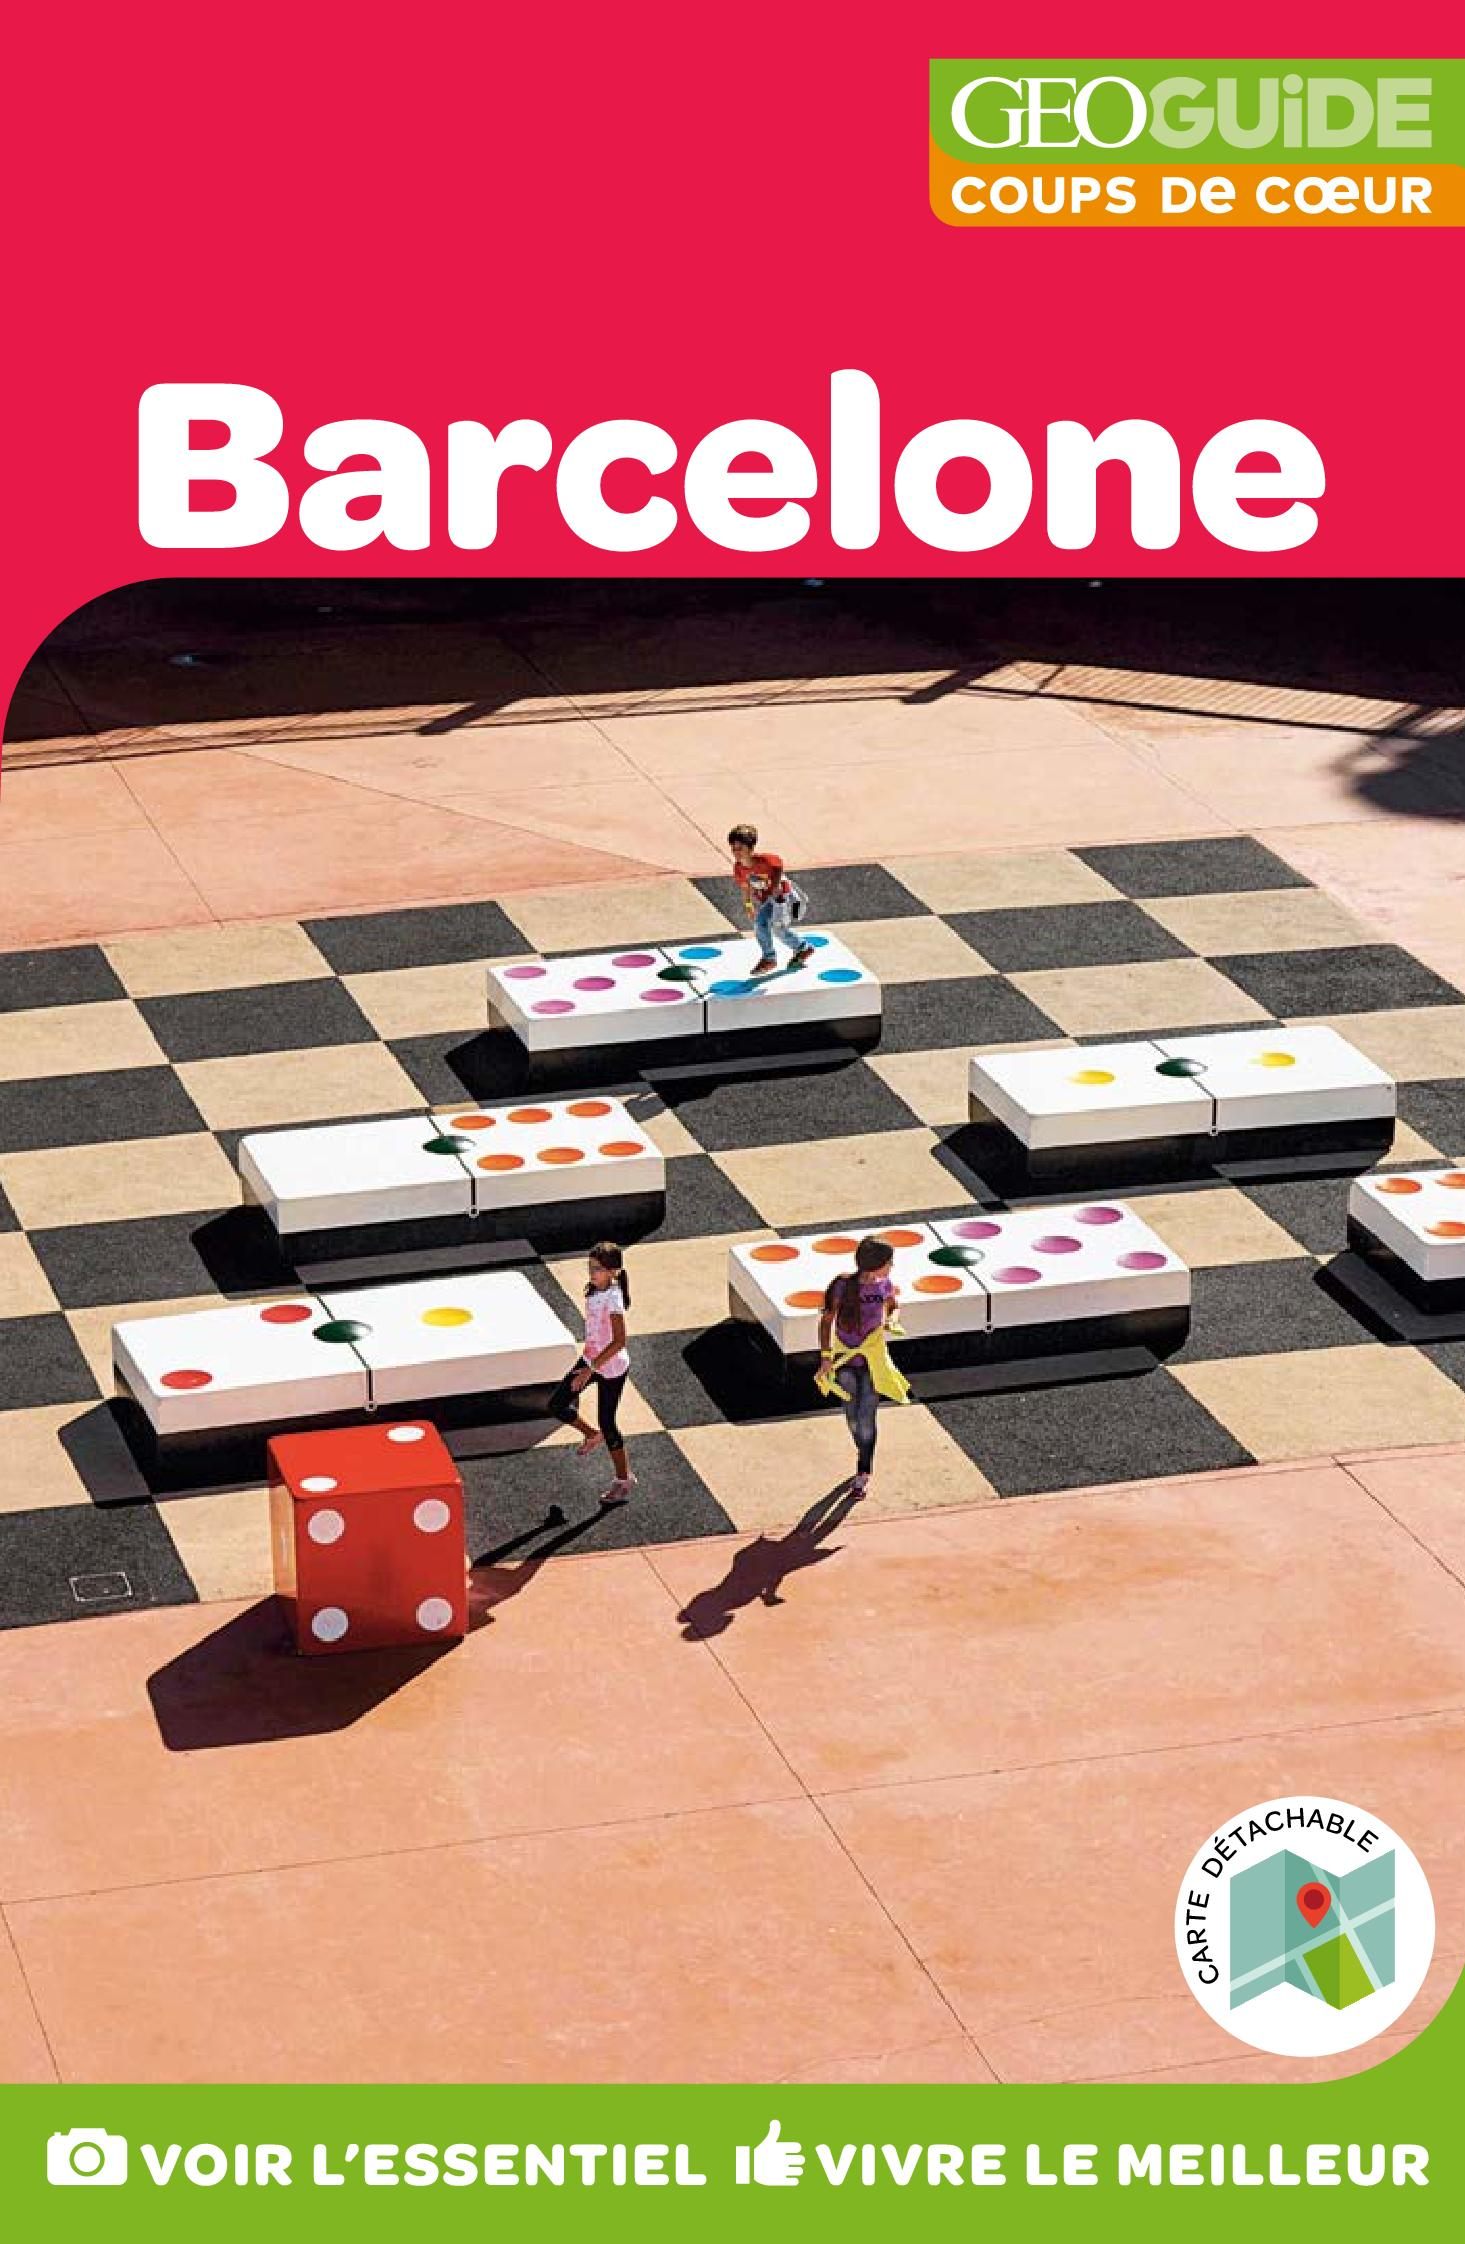 GEOguide Coups de coeur Barcelone | Collectif Gallimard Loisirs,